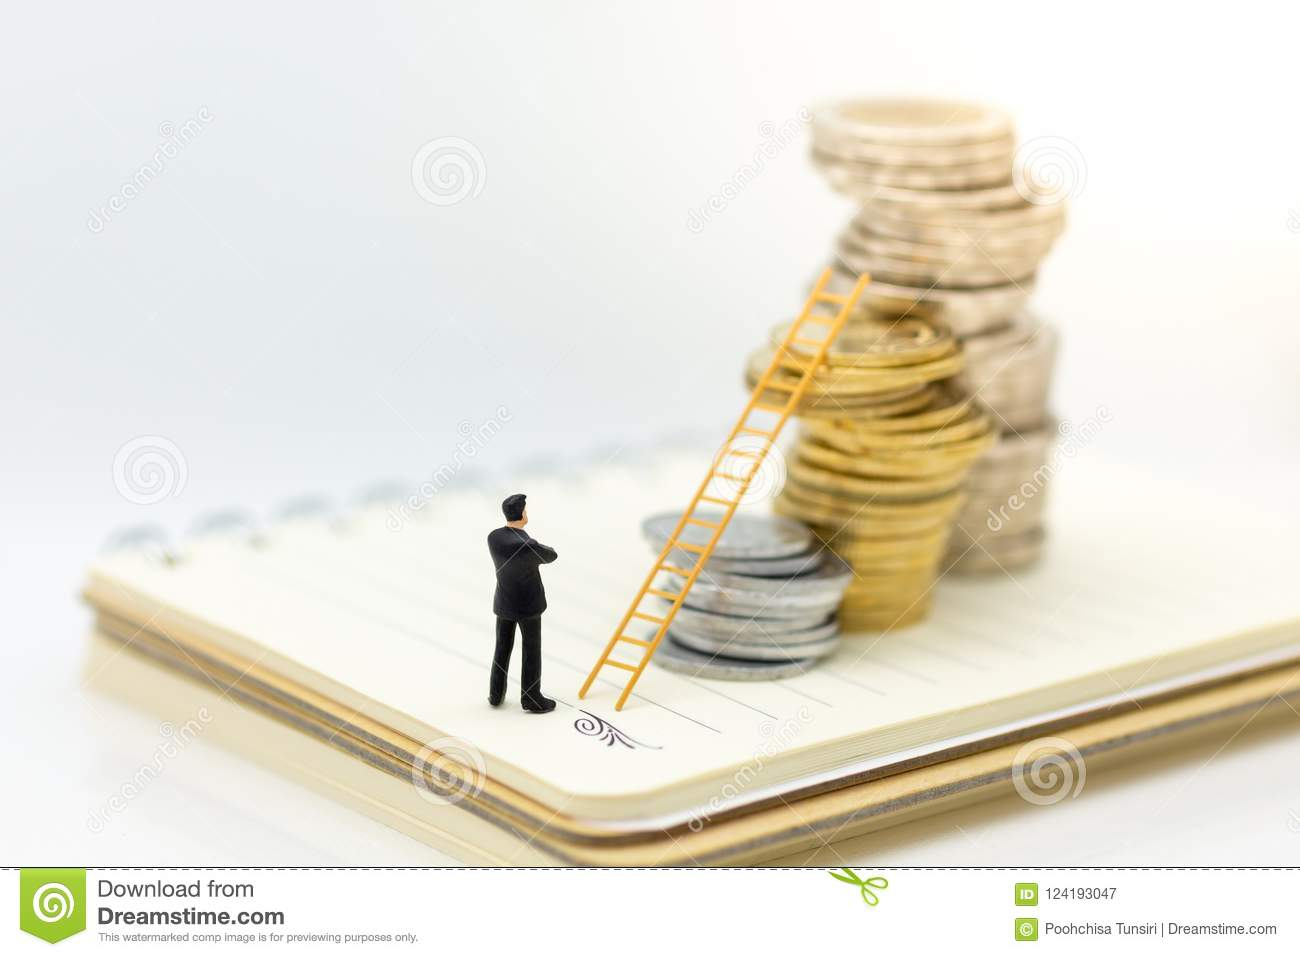 Miniature people: Businessman thinking and standing on stack of coins with stair. Image use for money growth up, business concept